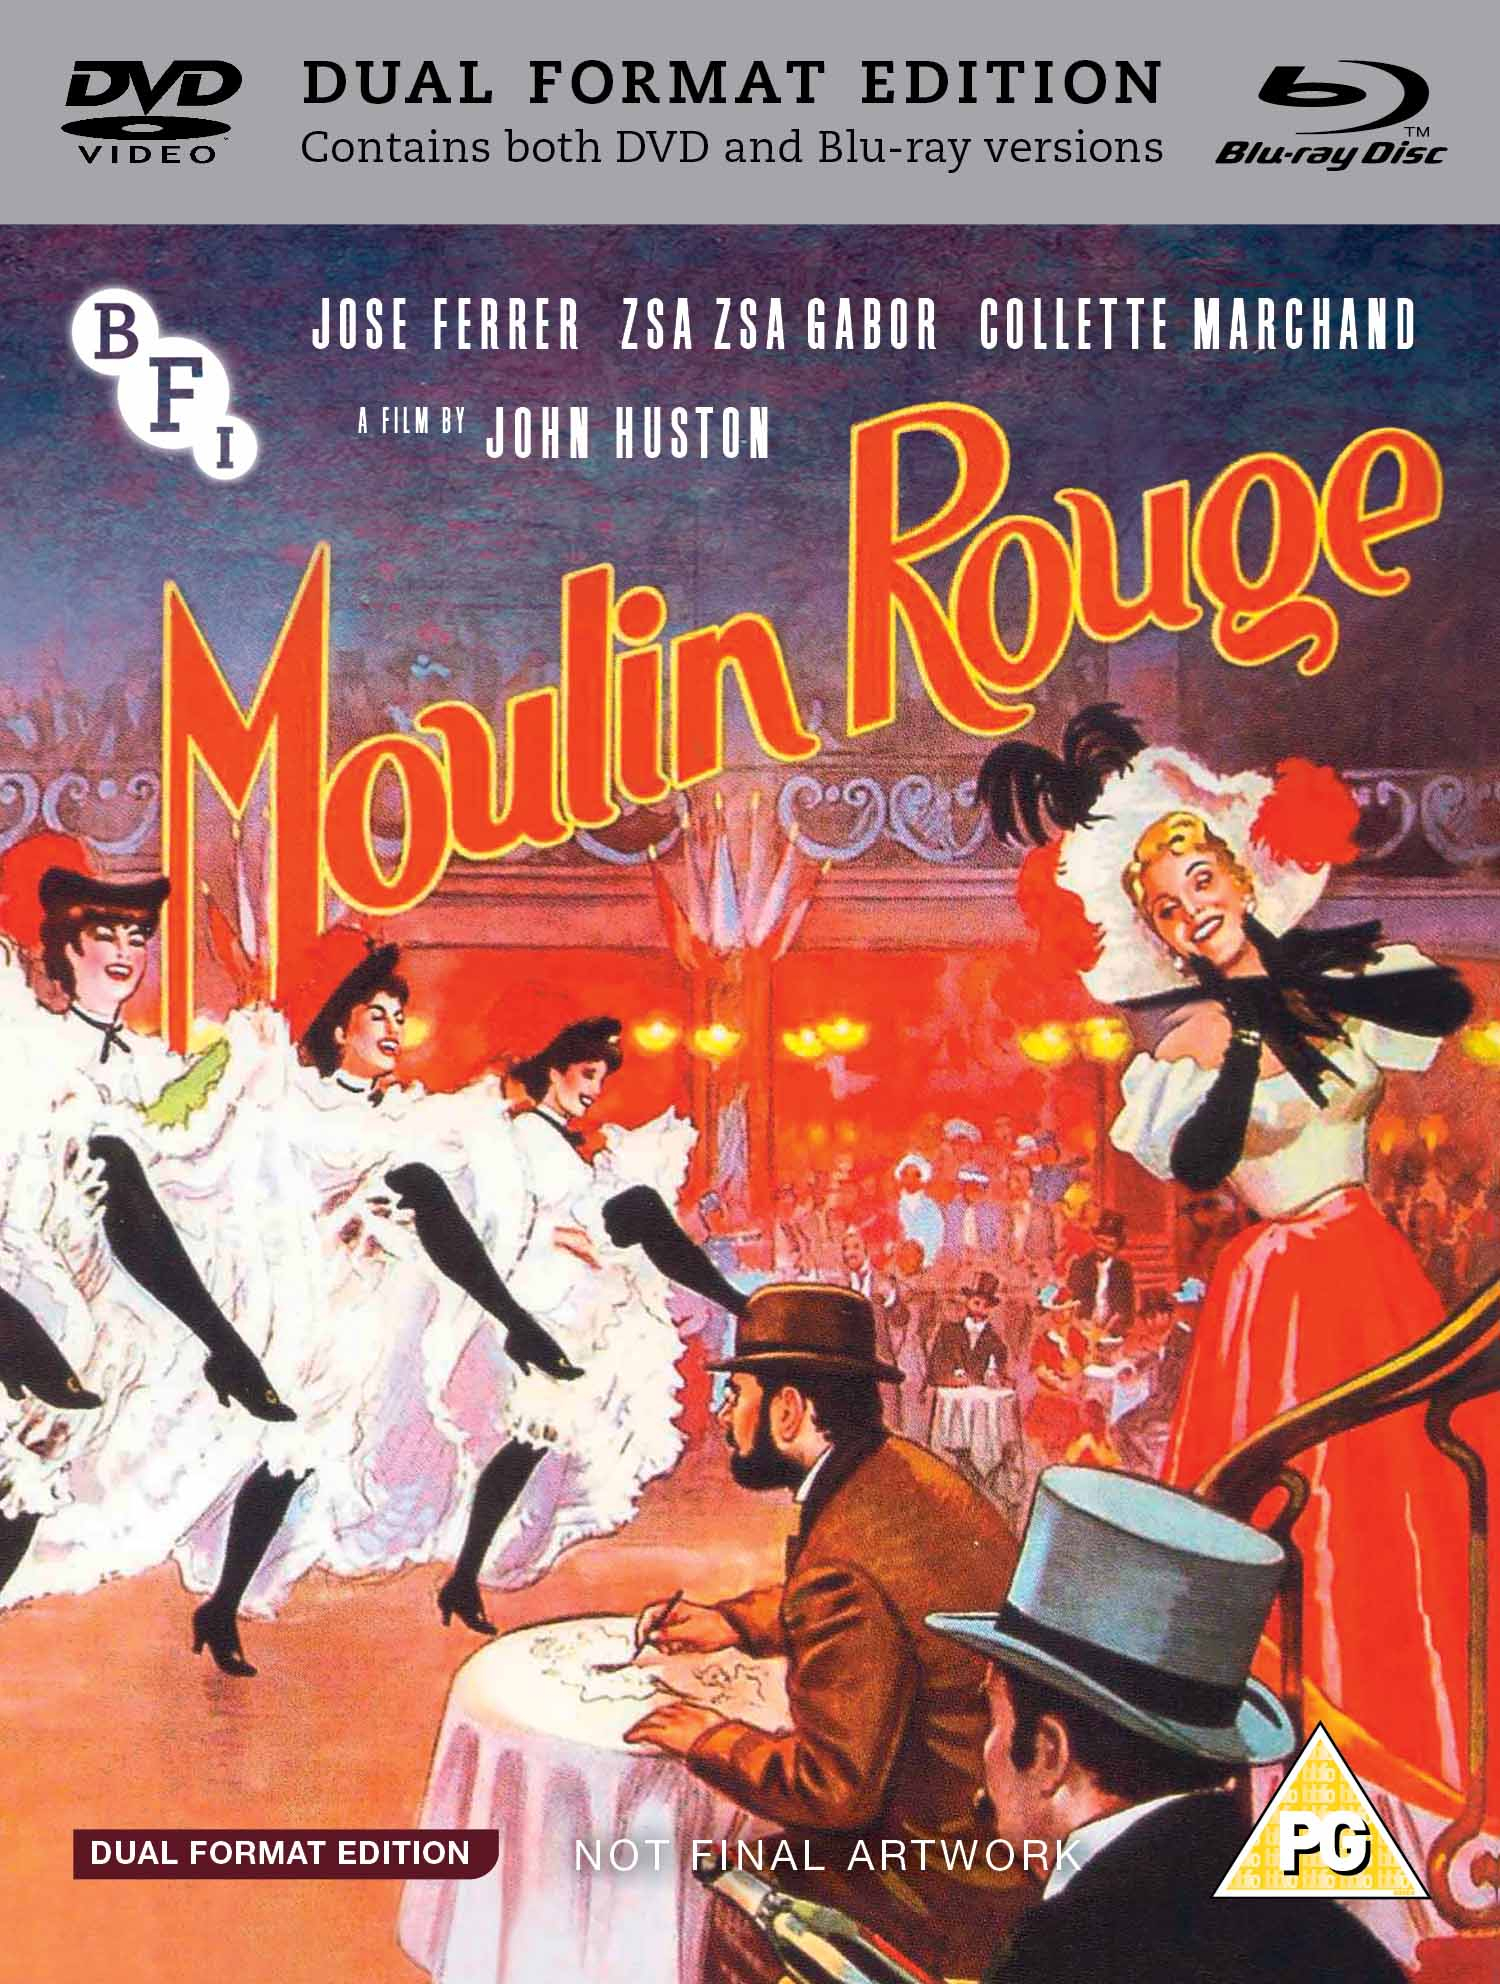 Buy PRE-ORDER Moulin Rouge (Dual Format Edition)